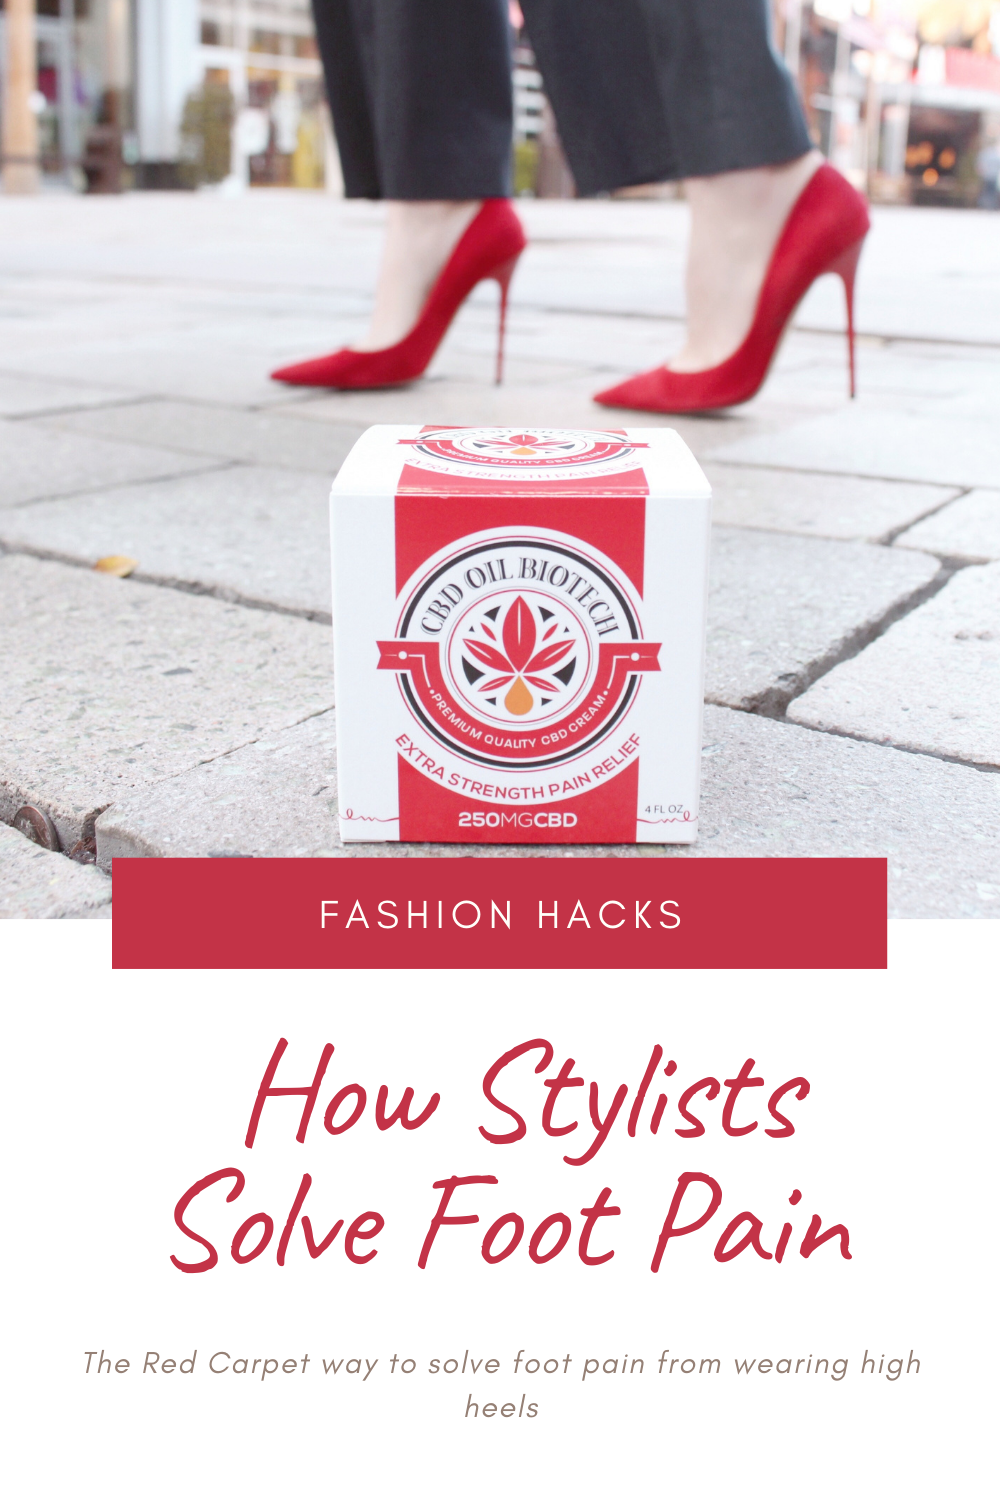 How to solve foot pain from wearing high heels